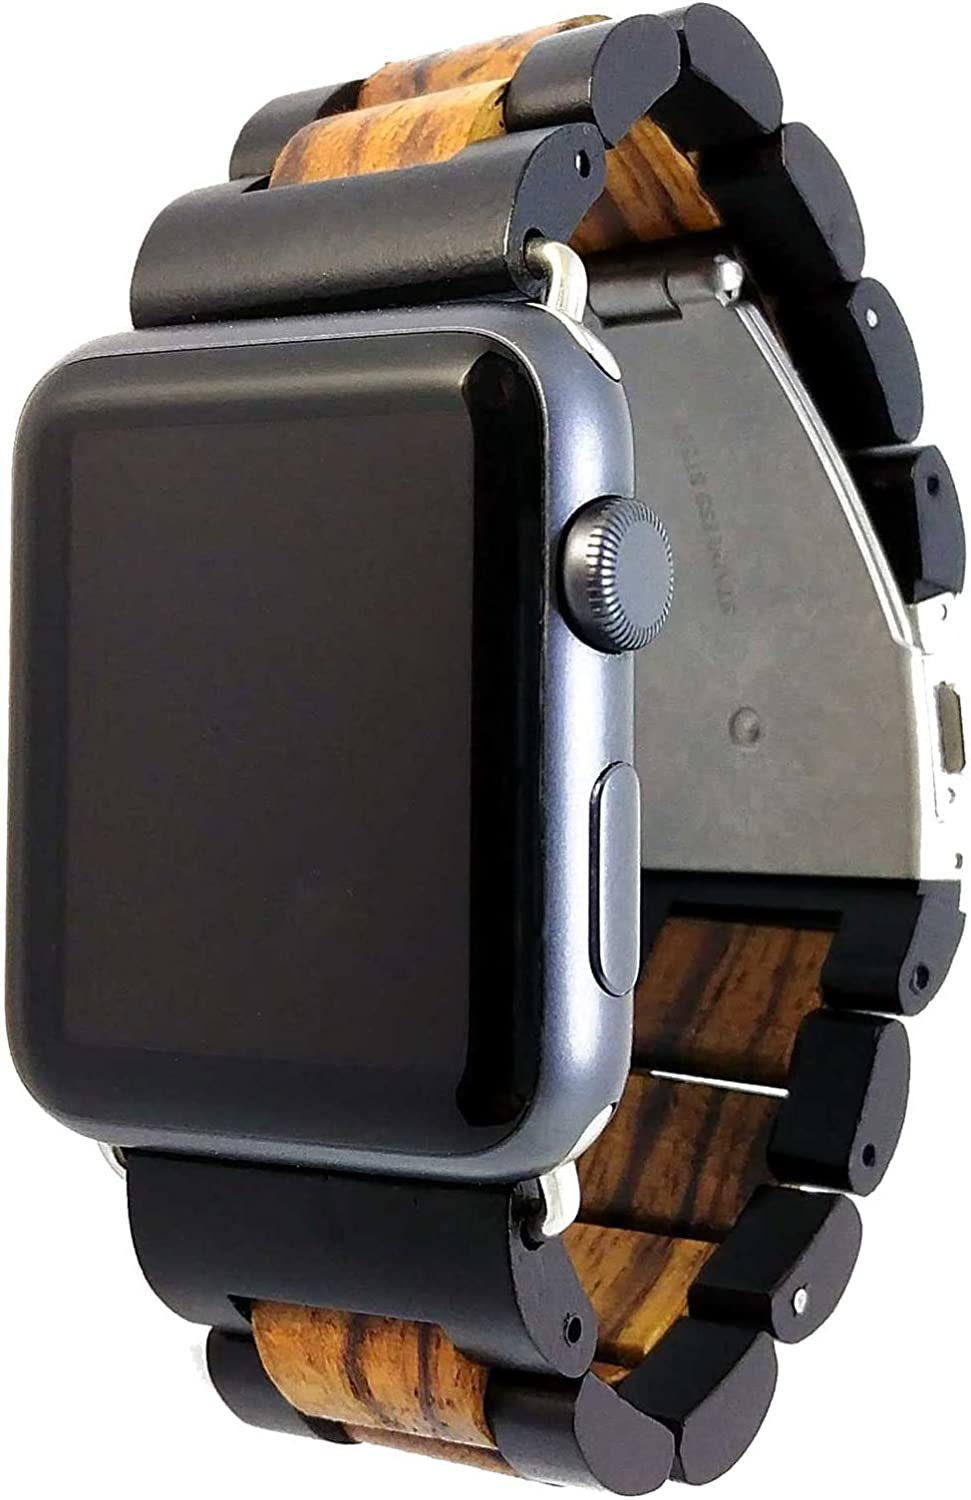 Apple Watch Band - Ottm 42mm Unique Wooden Watch Band for Apple iWatch with extra links and tool for resizing (Zebra/Sandalwood)